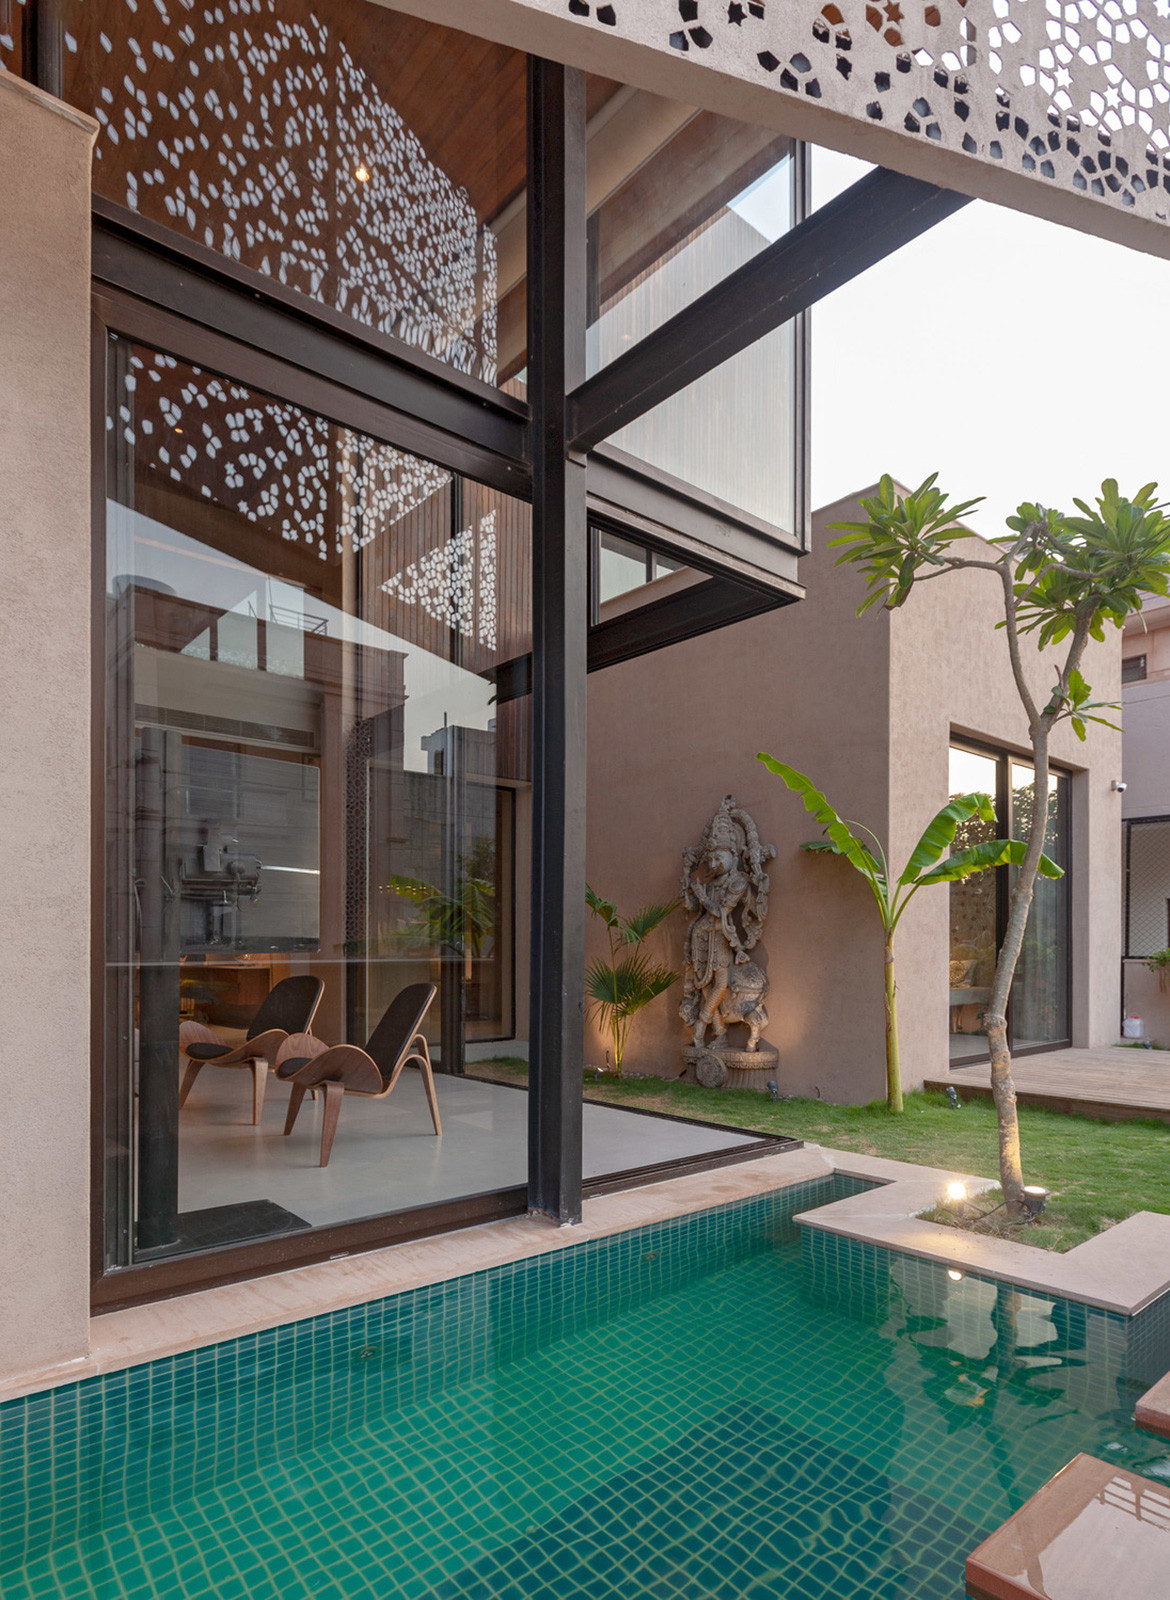 Chavvi House Vastu Shastra Abraham John Architects pool